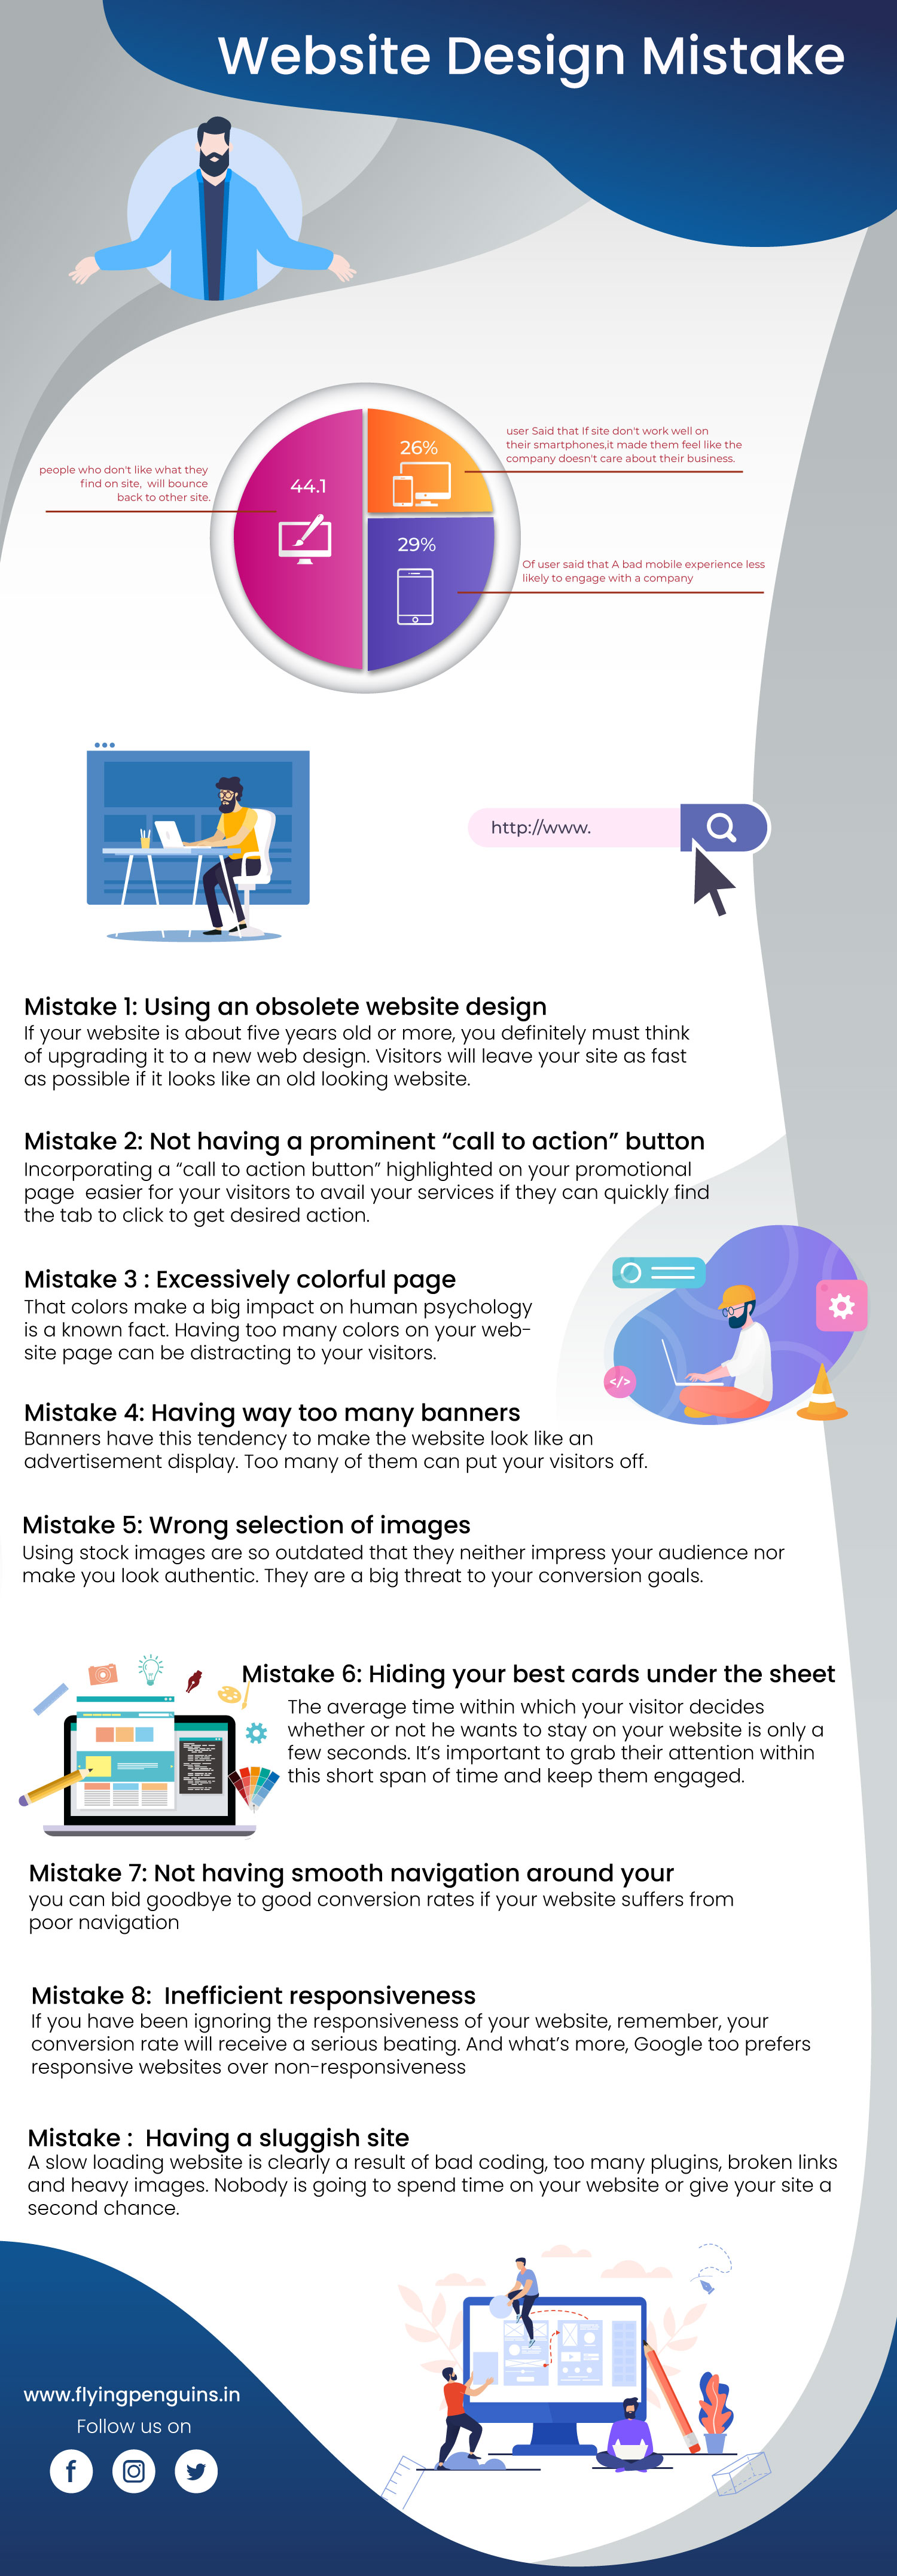 Website Design Mistakes Infographic